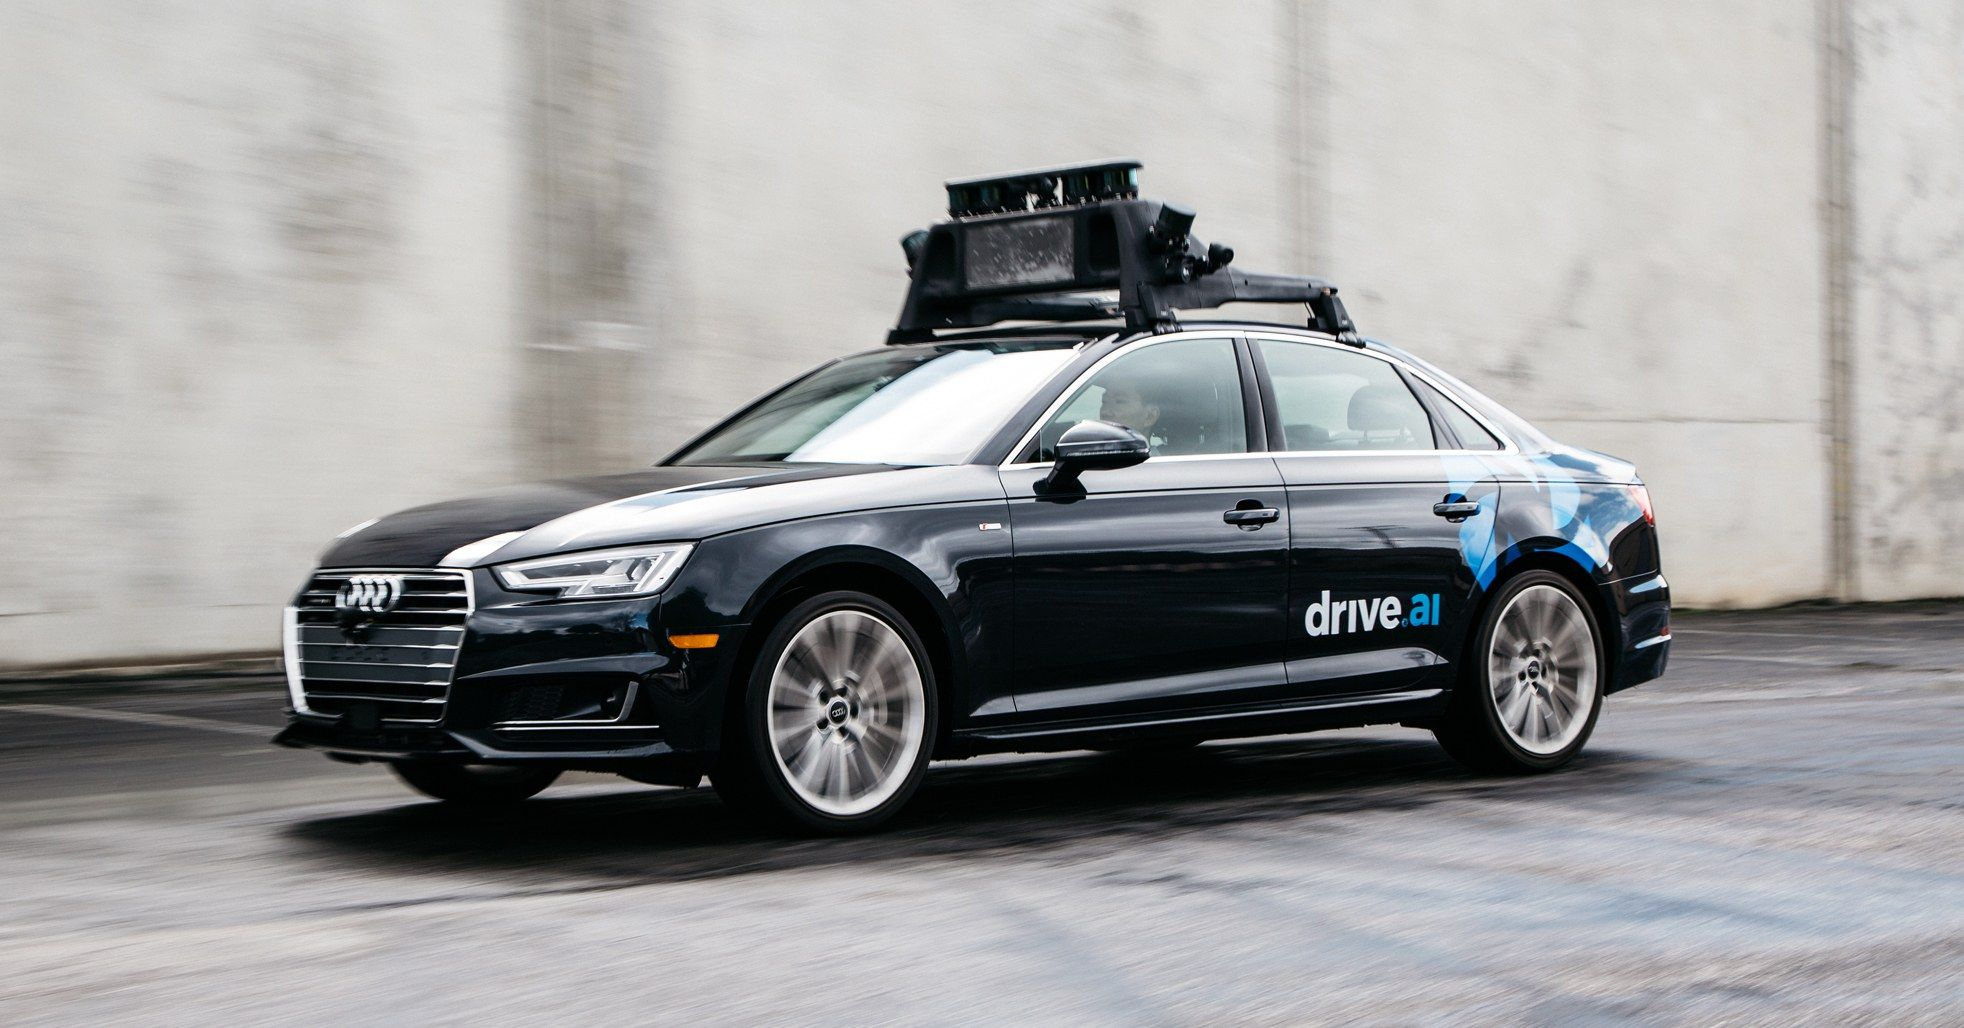 the california dmv wants to make your self driving car dreams come